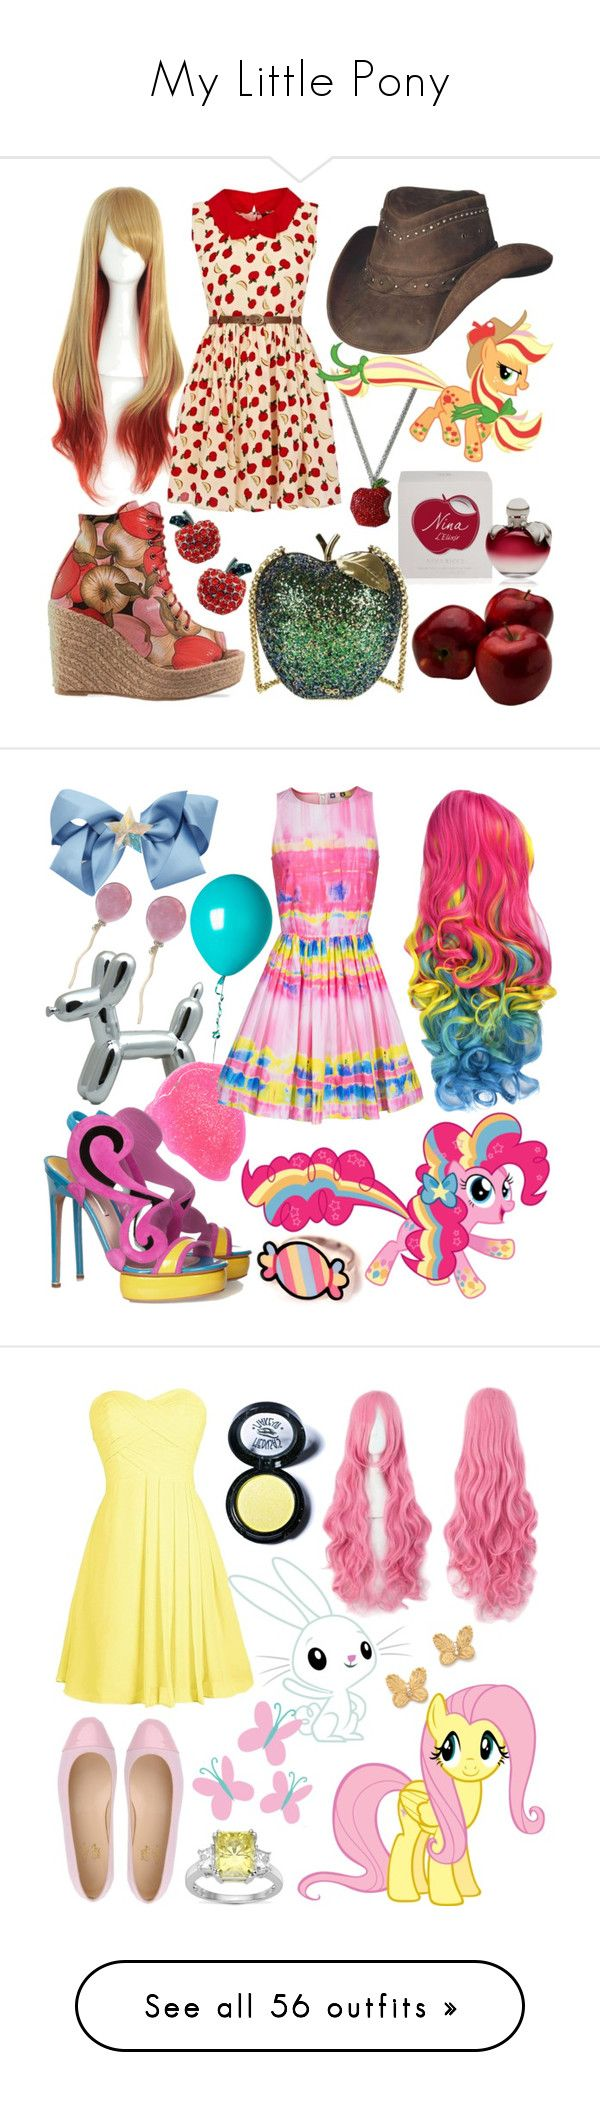 """""""My Little Pony"""" by ravenelesig ❤ liked on Polyvore featuring Nina Ricci, Oasis, Ego and Greed, Anya Hindmarch, MLP, MyLittlePony, Applejack, powerpony, Vhernier and MSGM"""